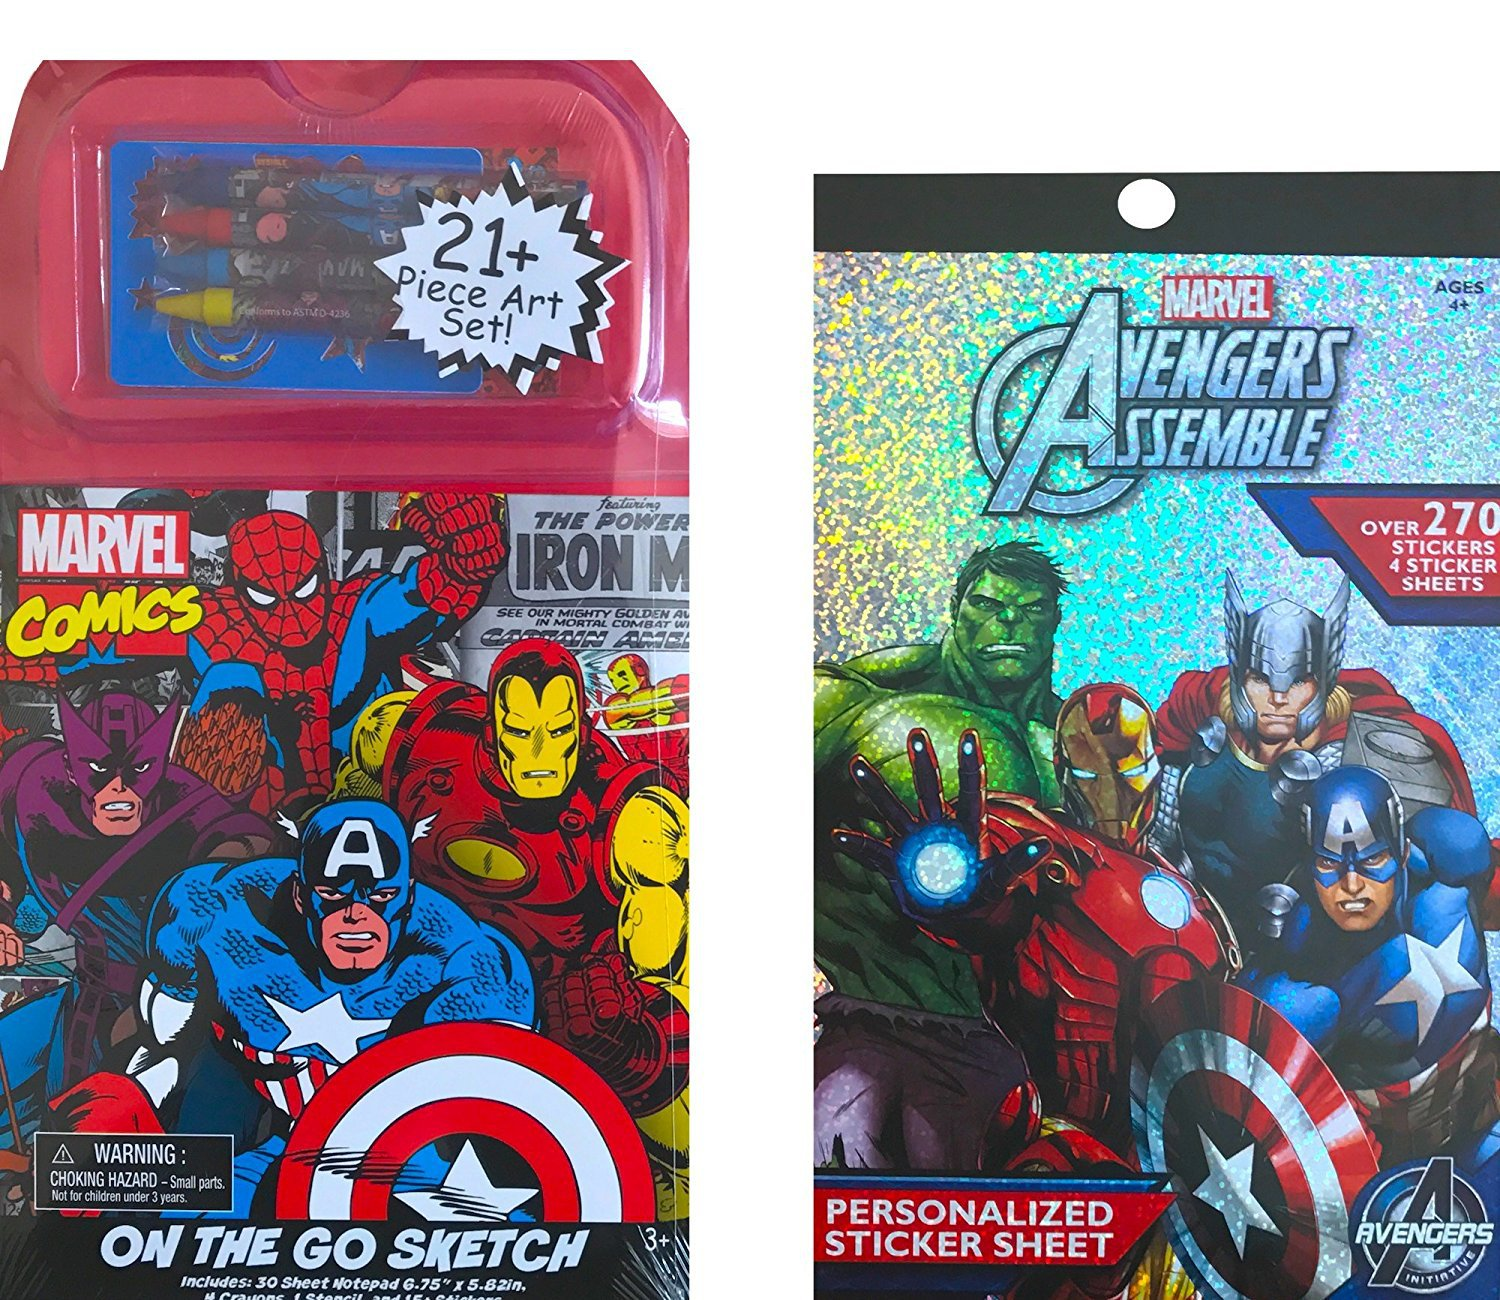 Marvel Avengers Comics Art On the Go Sketch 21Pc Art Set With Stickerbook 270 Stickers